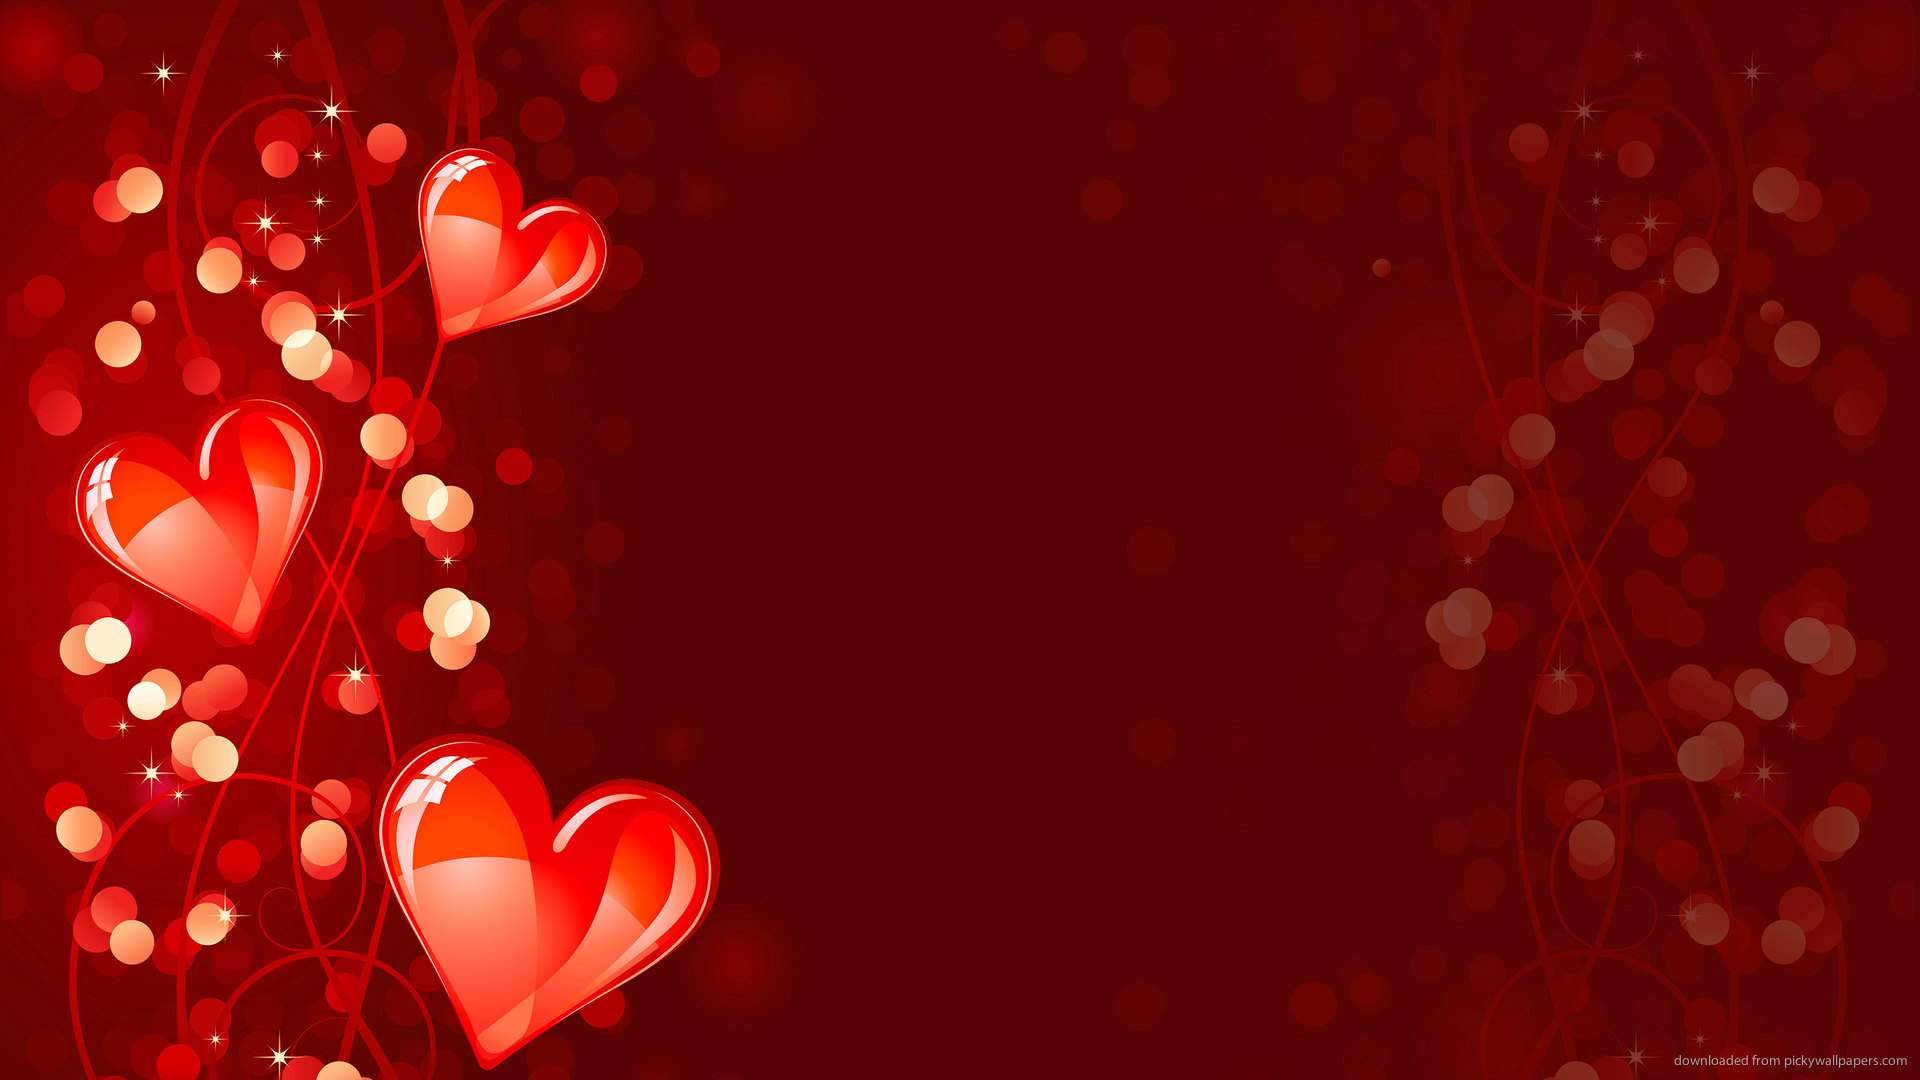 48 free hearts wallpaper and screensavers on